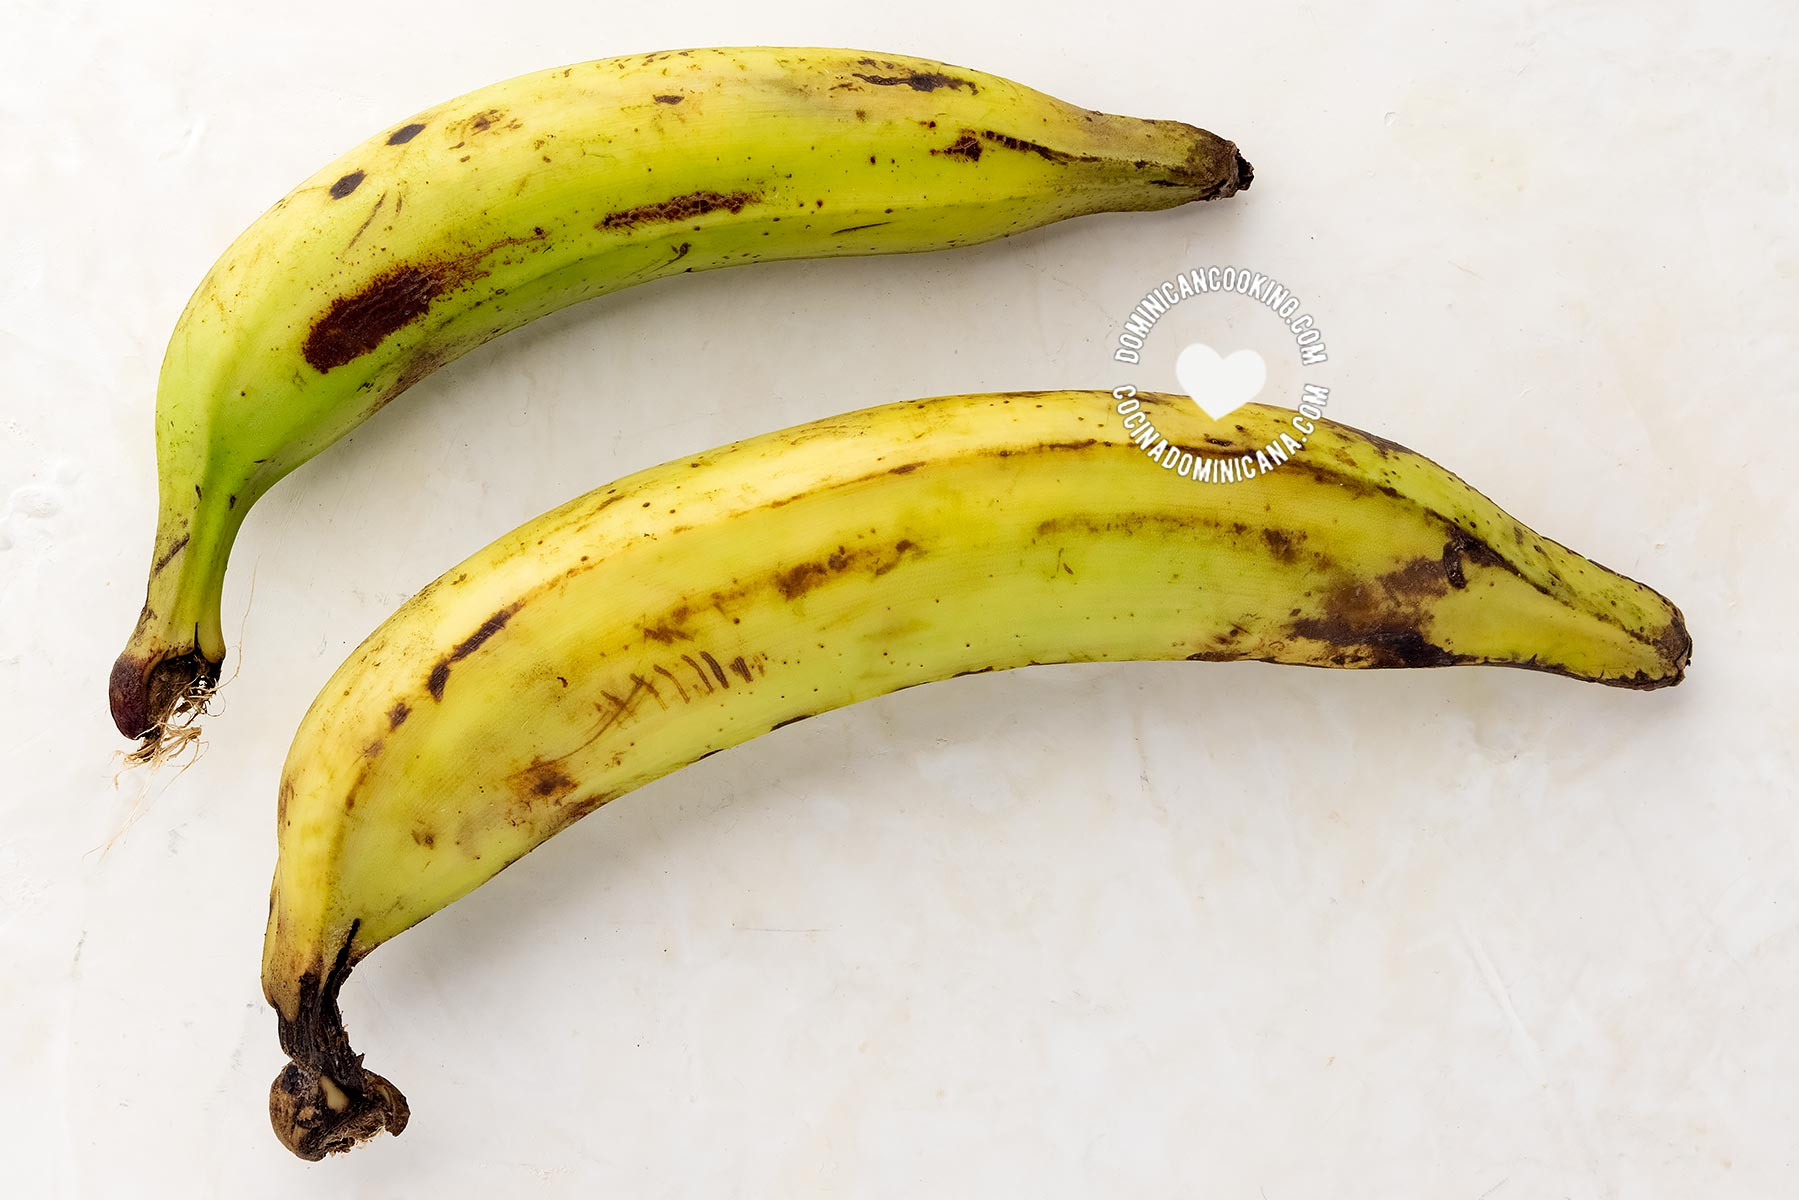 Two plantains of different sizes